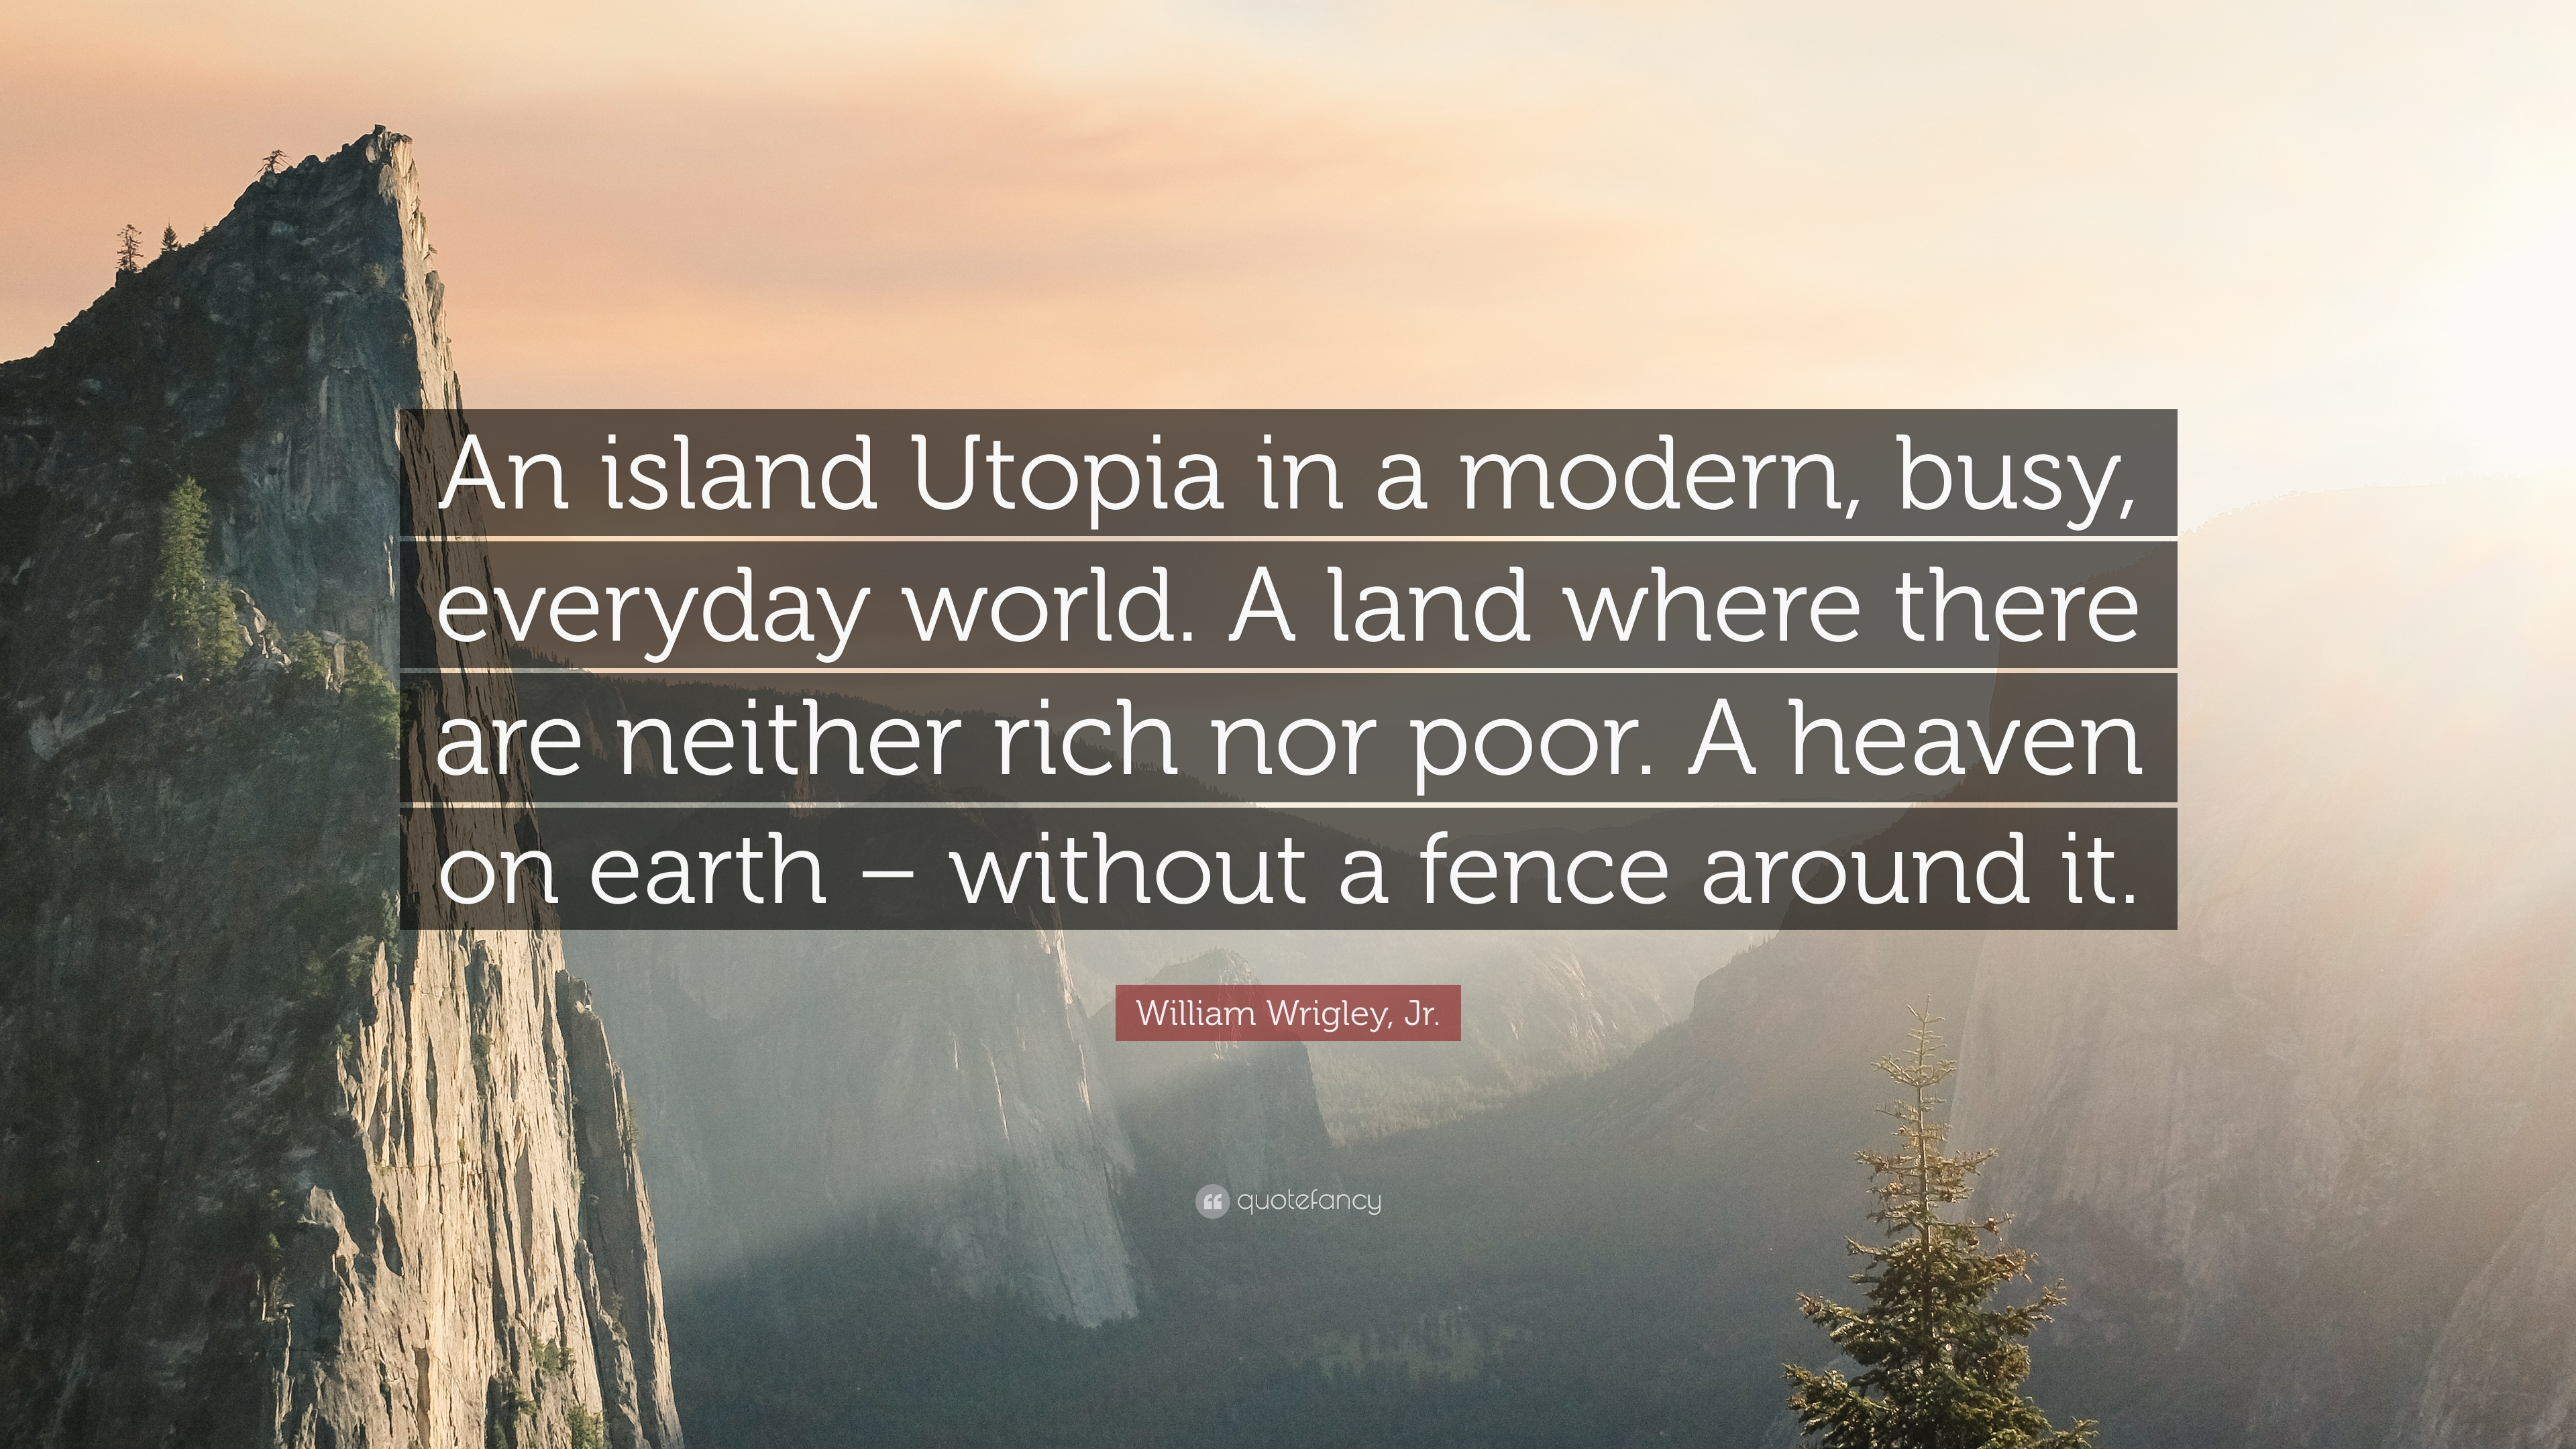 1543859-William-Wrigley-Jr-Quote-An-island-Utopia-in-a-modern-busy.jpg